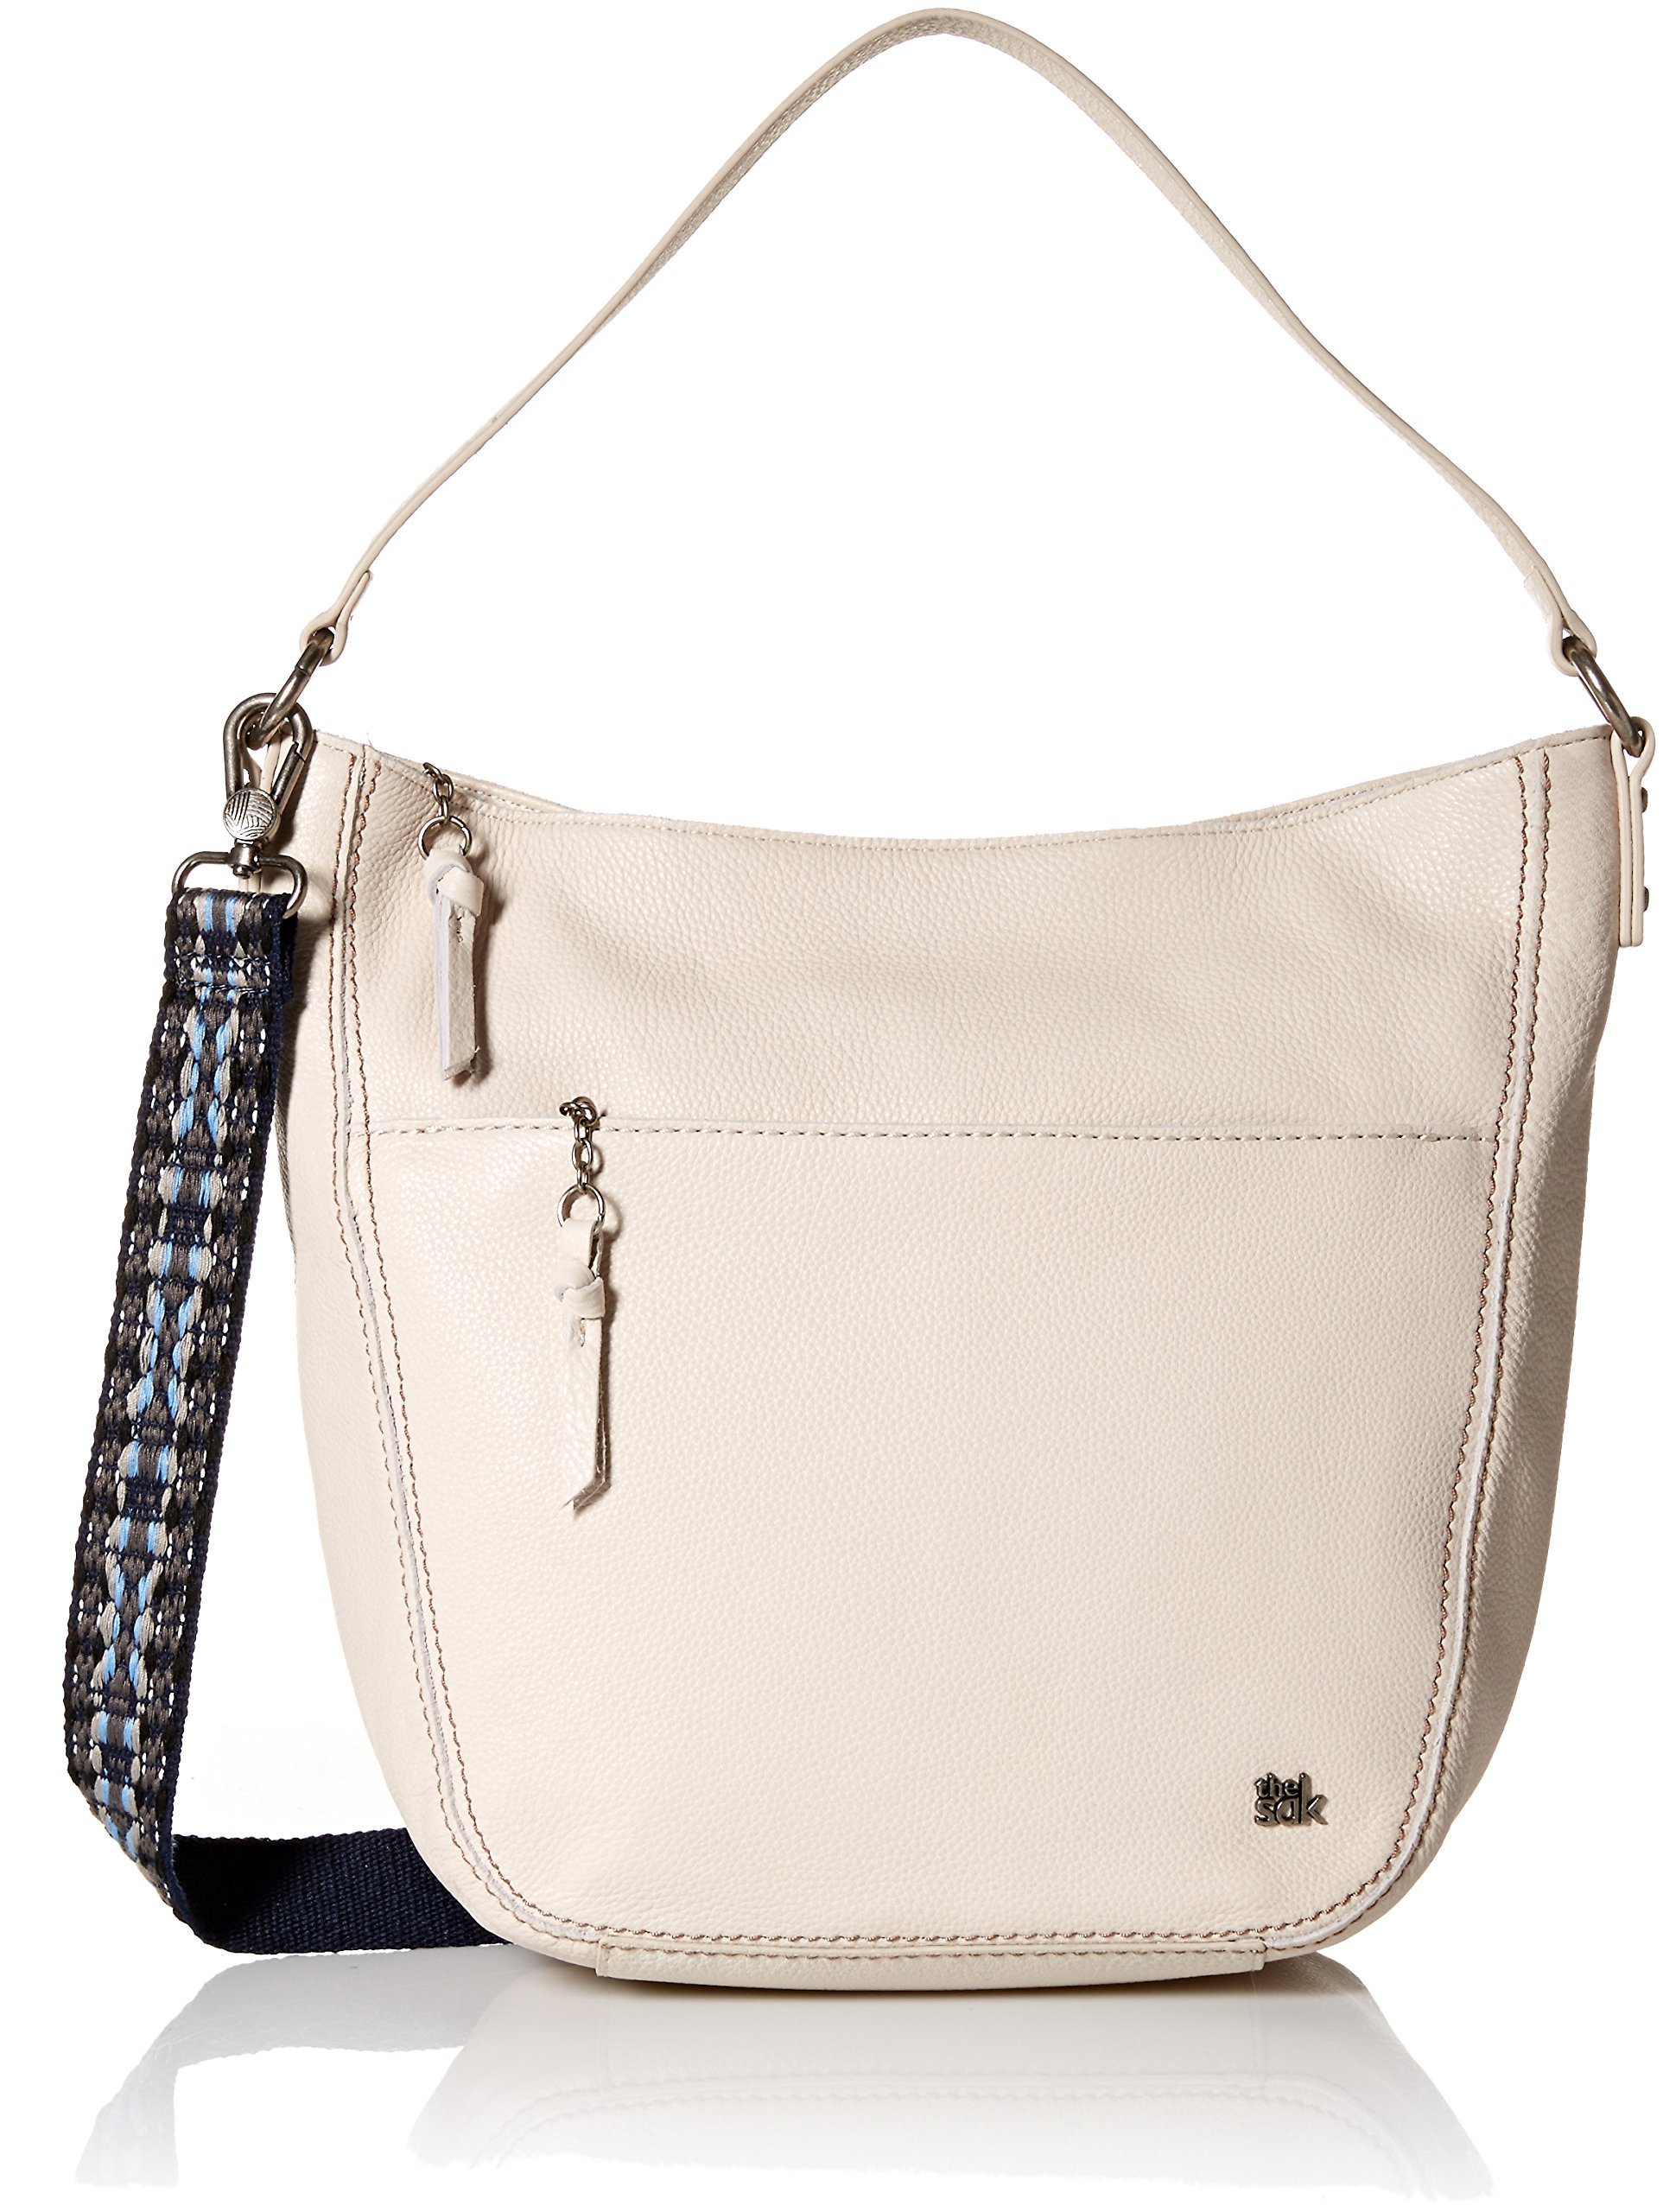 The Sak Cole Valley Hobo Bag, Stone